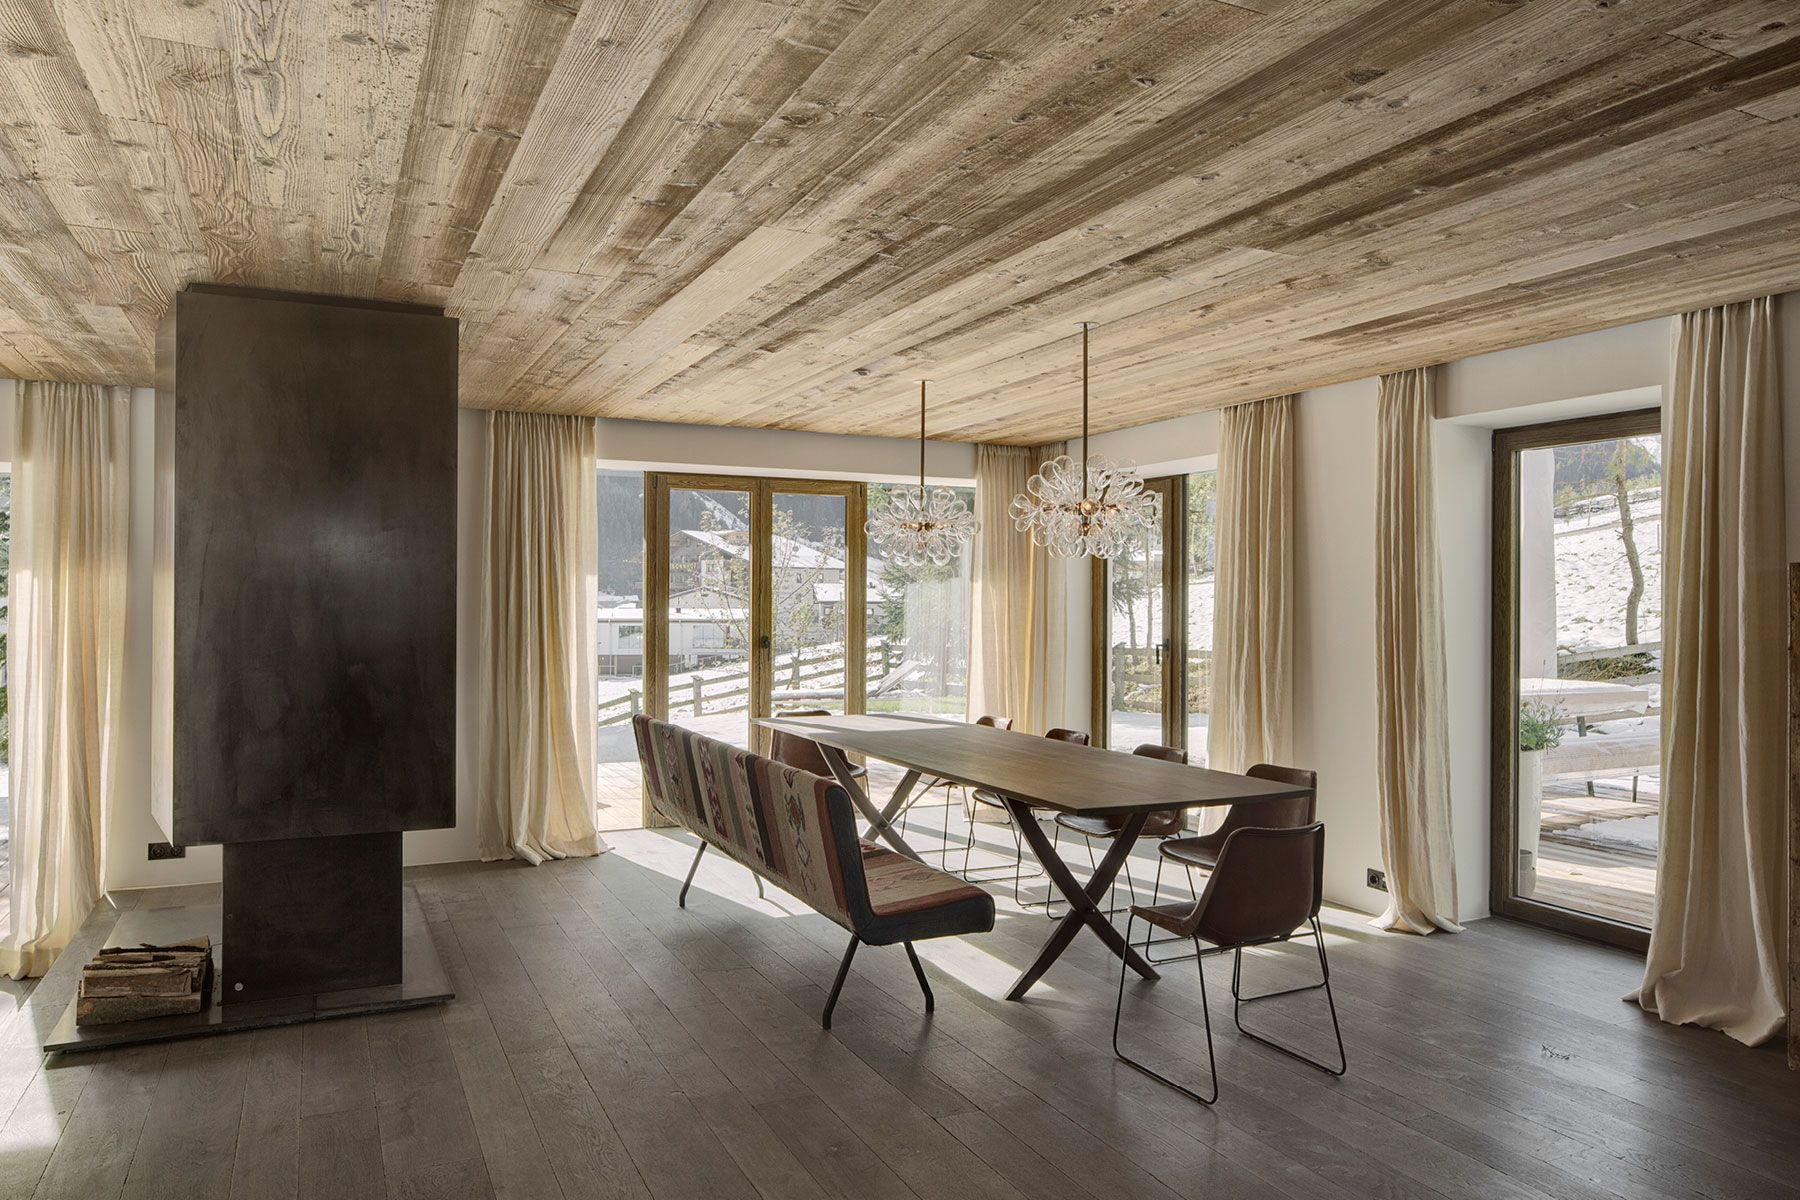 Dining room in haus s in tirol austria designed by gogl for Interior design osterreich